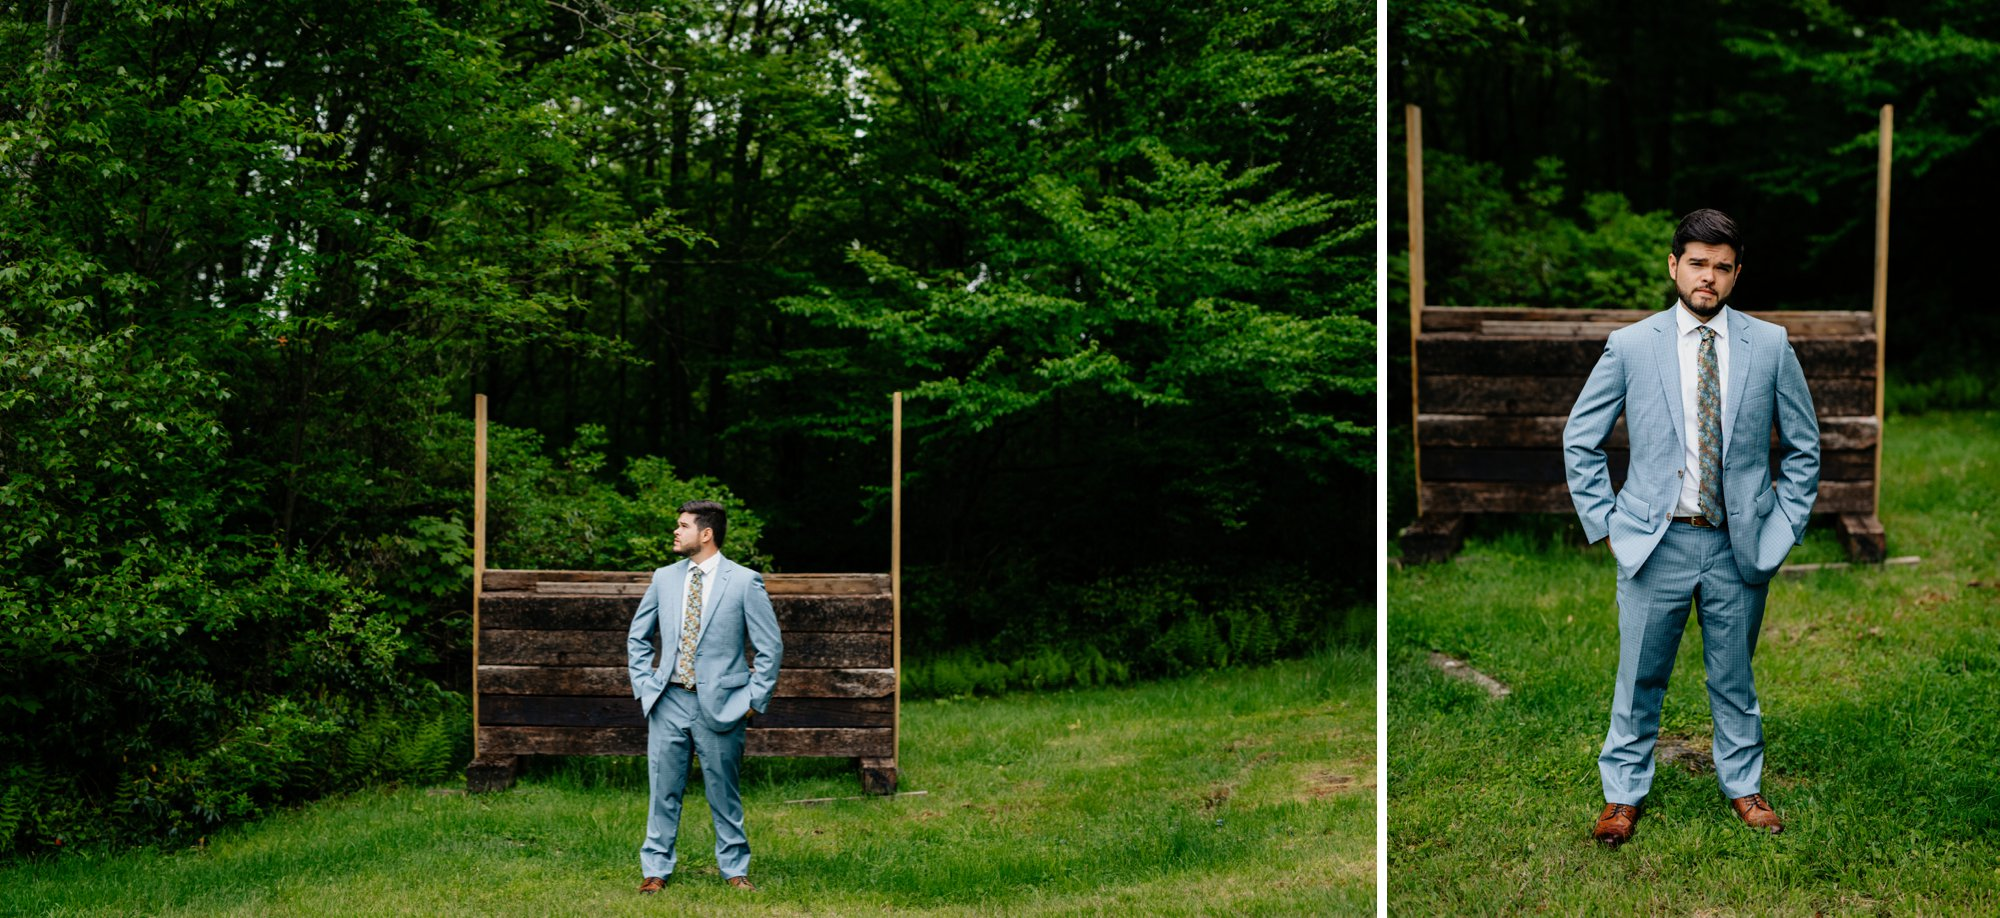 Fiddle Lake Farm Philadelphia Pennsylvania Misty Rustic Wedding with Lush Florals Grooms portrait